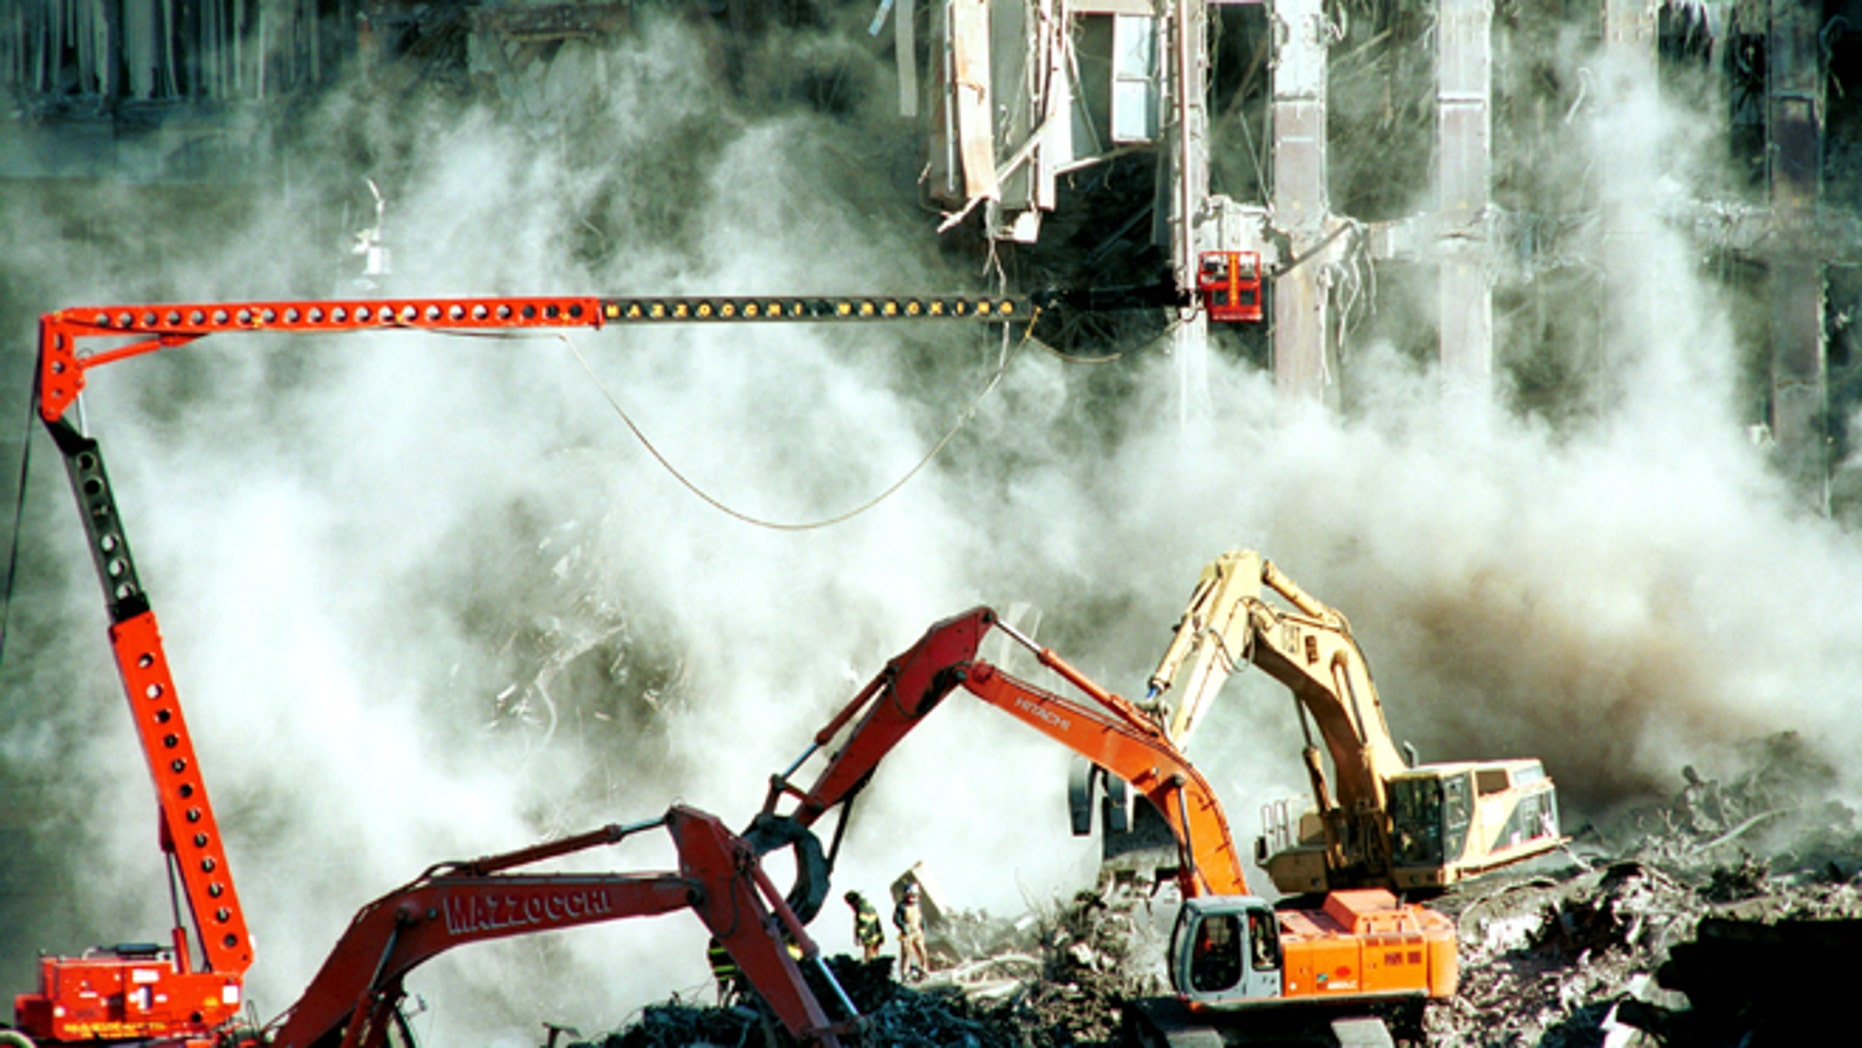 396041 01: Weeks after the World Trade Center attacks, firefighters keep clearing the rubble October 17, 2001 in New York. A section of the facade from the south tower of the World Trade Center was brought down with a cloud of dust Tuesday as cleanup of the disaster site entered its sixth week. (Photo by Shaul Schwarz/Getty Images)